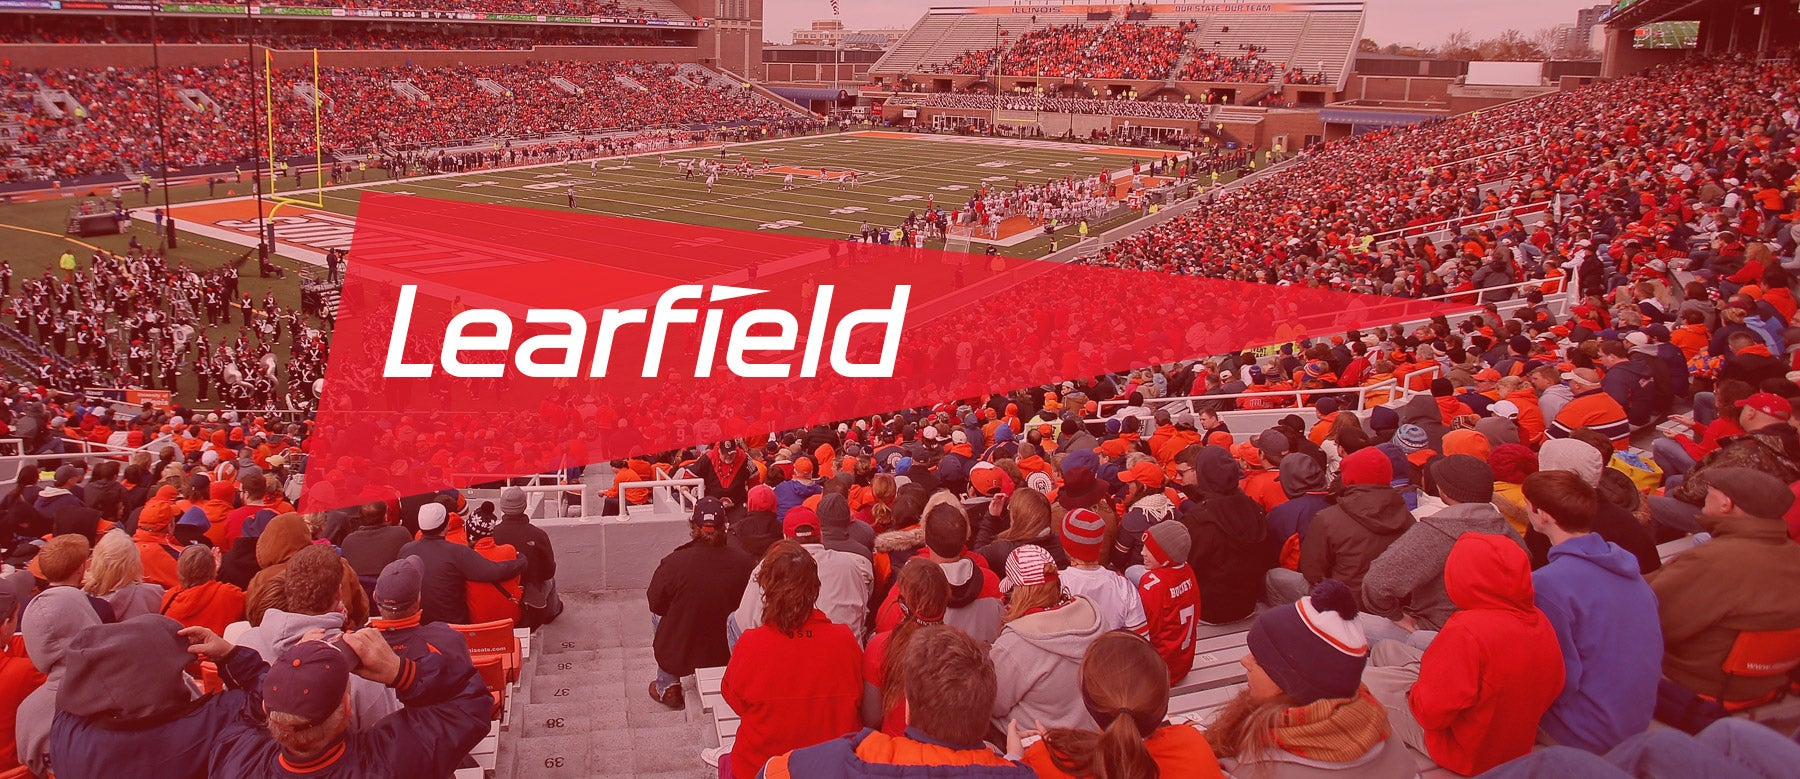 news_learfield_header.jpg